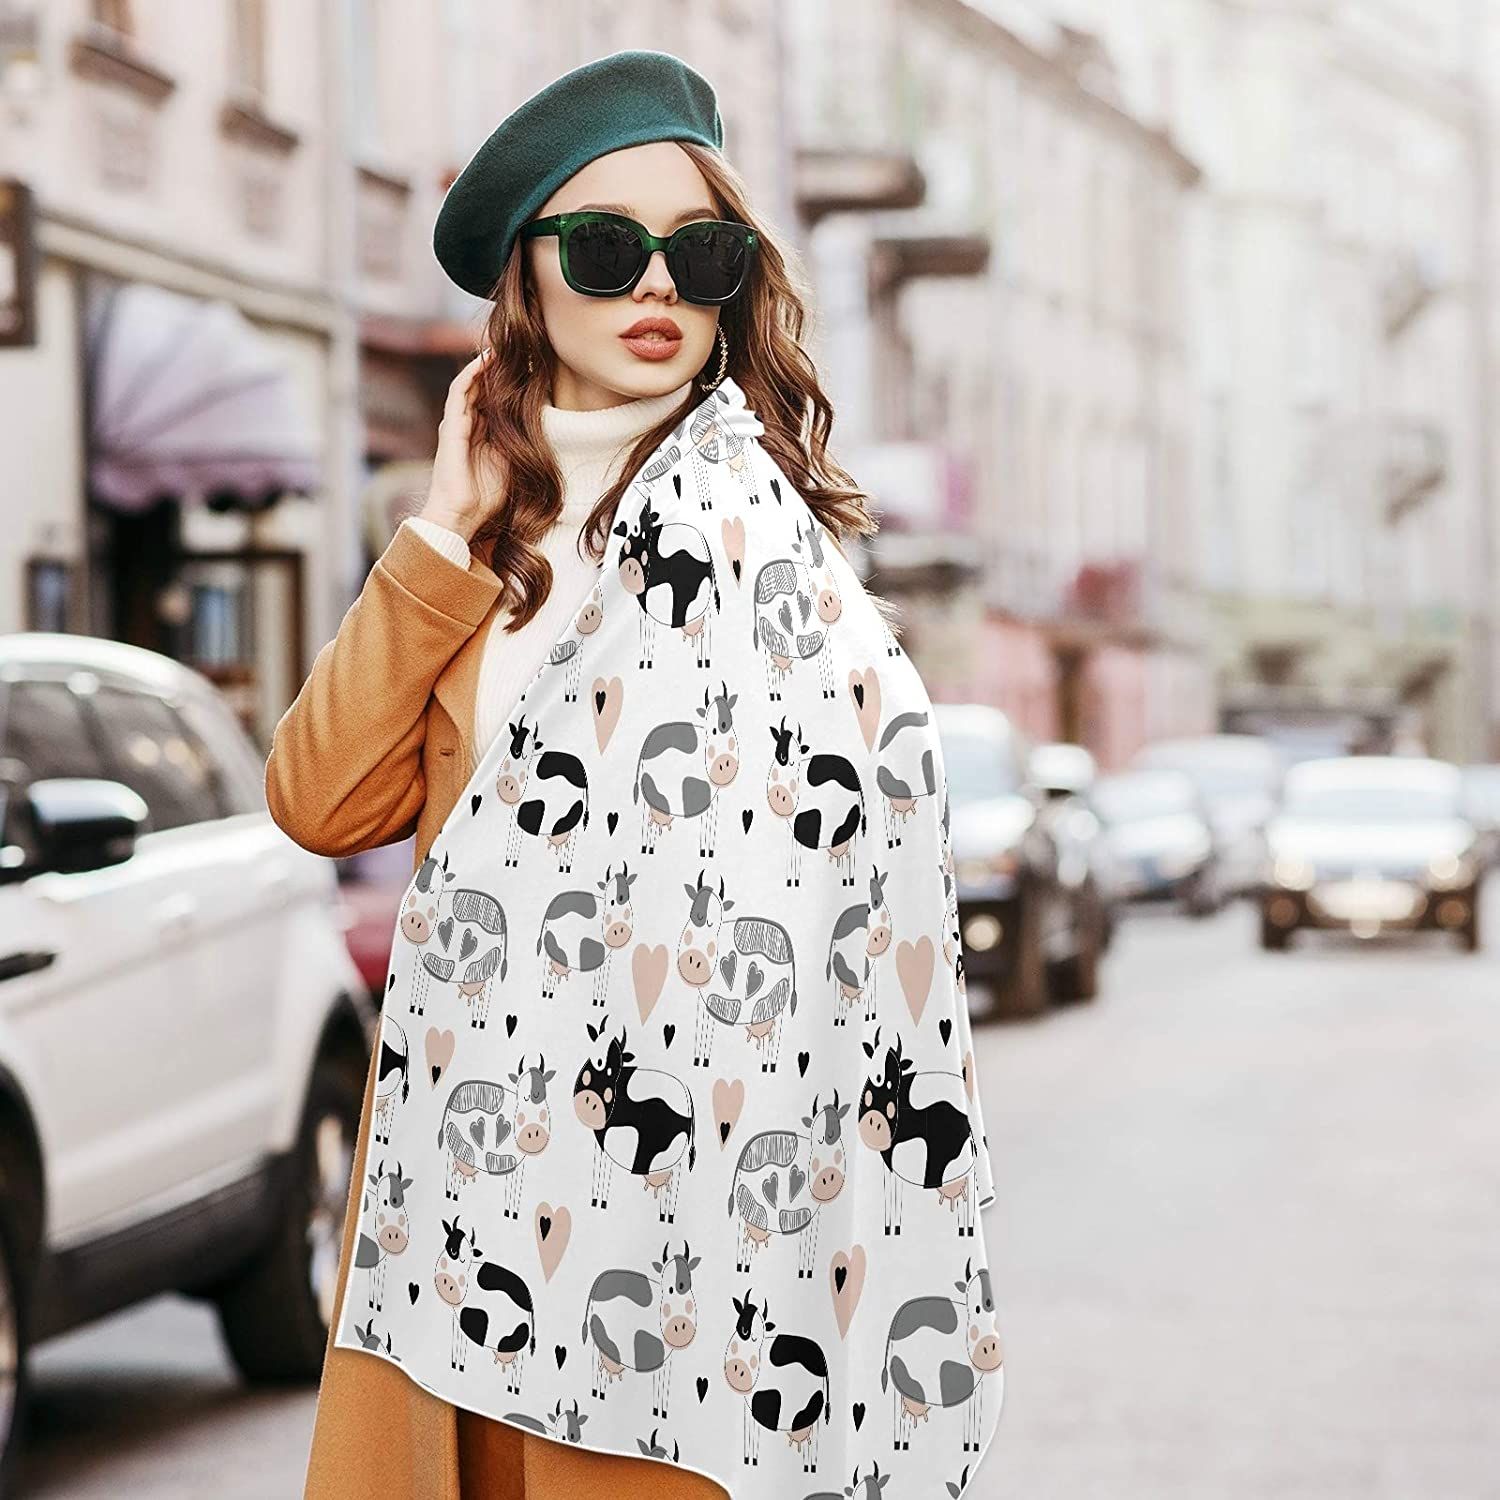 Scarf for Women and Men Cute Cows Love Shawl Wraps Blanket Scarf Soft warm Winter Oversized Scarves Lightweight